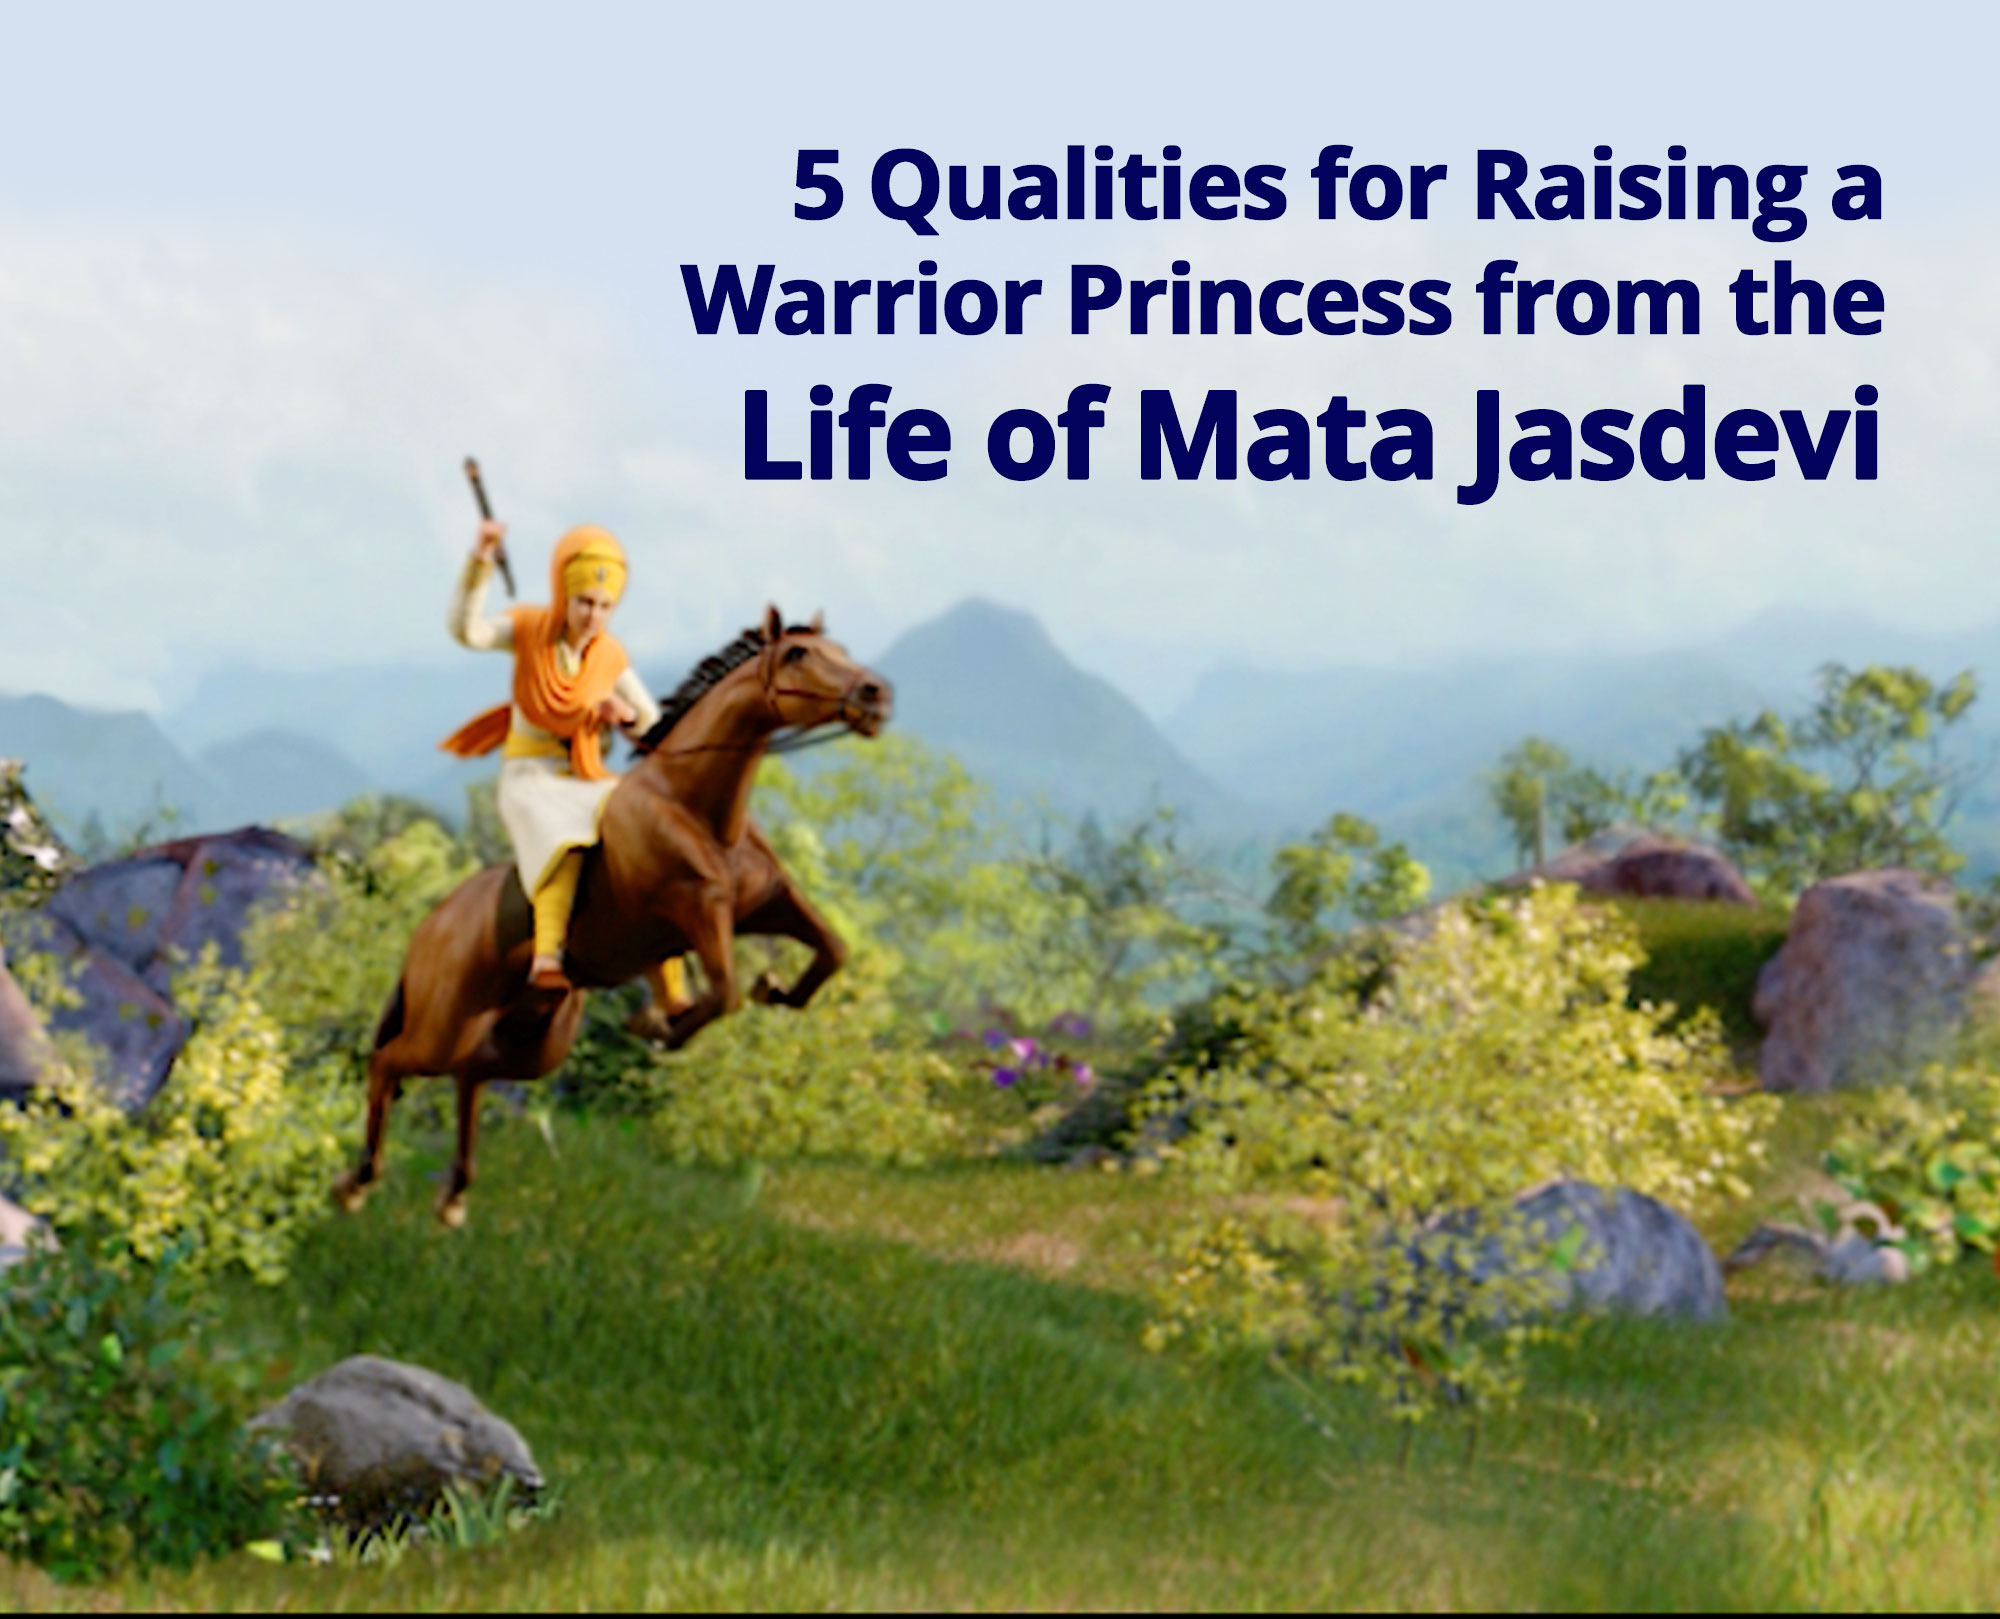 5 Qualities for Raising a Warrior Princess from the life of Mata Jasdevi (Mother of Mata Sahib Kaur Ji)